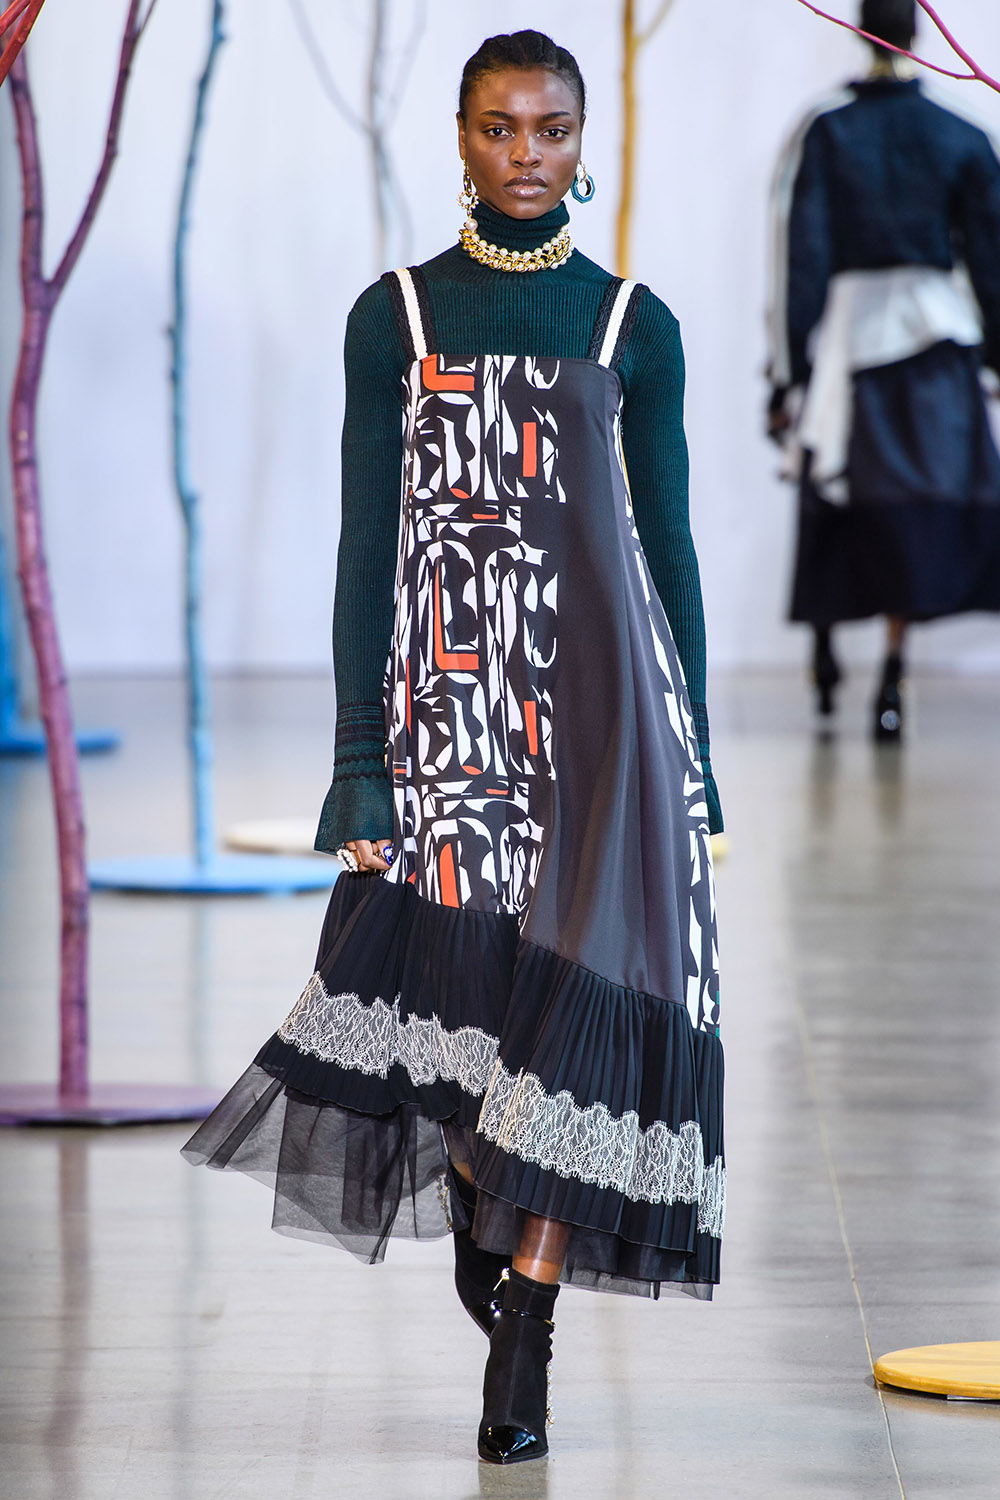 Best NYFW Looks I Adeam Fall 2019 Collection #NYFW #Fall2019 #FW19 #Runway